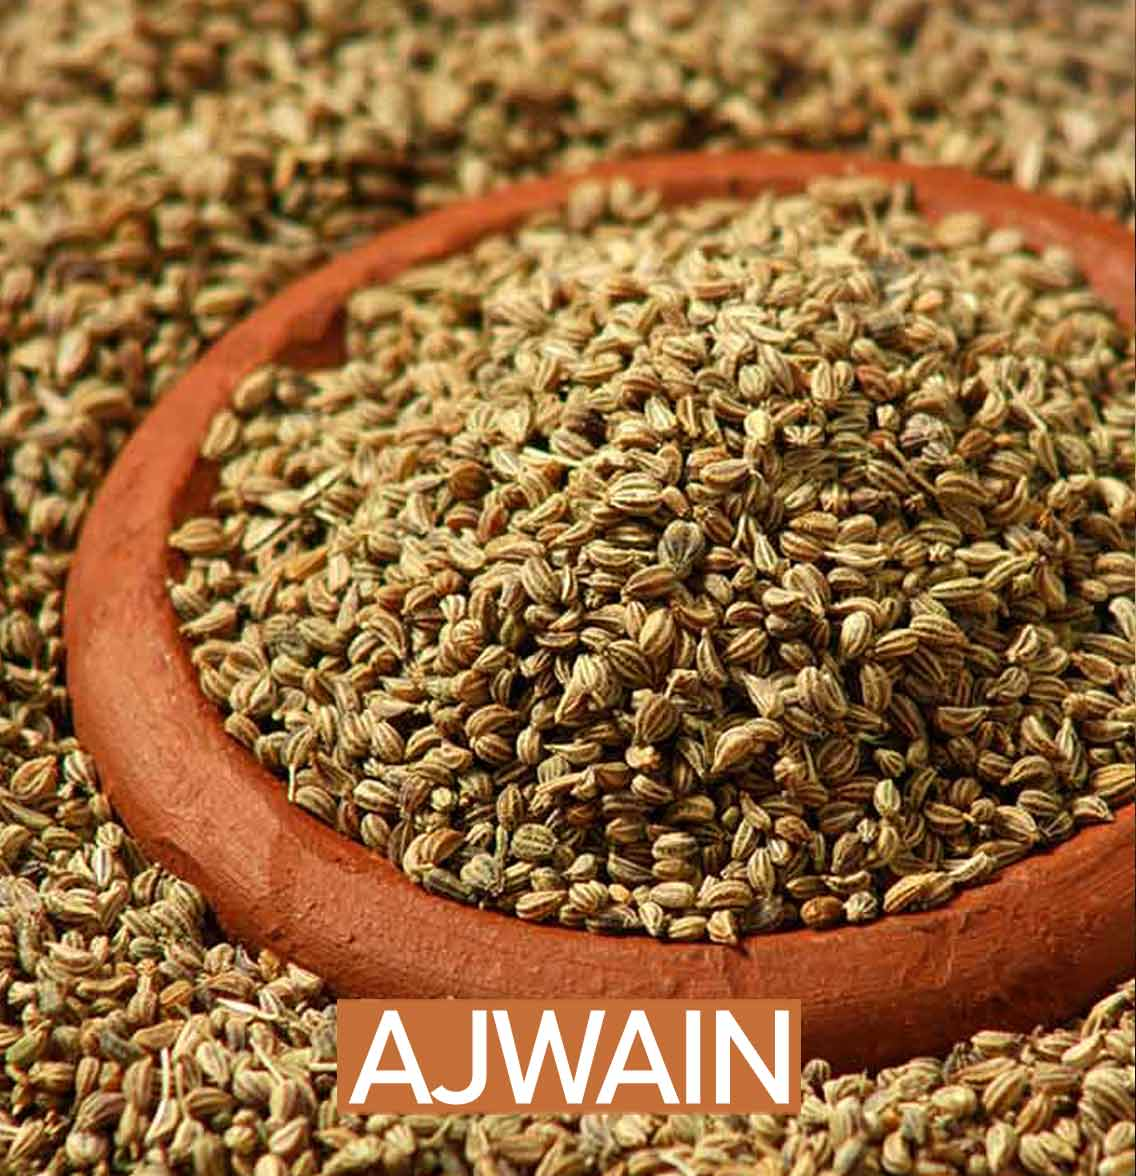 Amazing Ajwain & Its Benefits – How Carom Seeds Impact Your Health